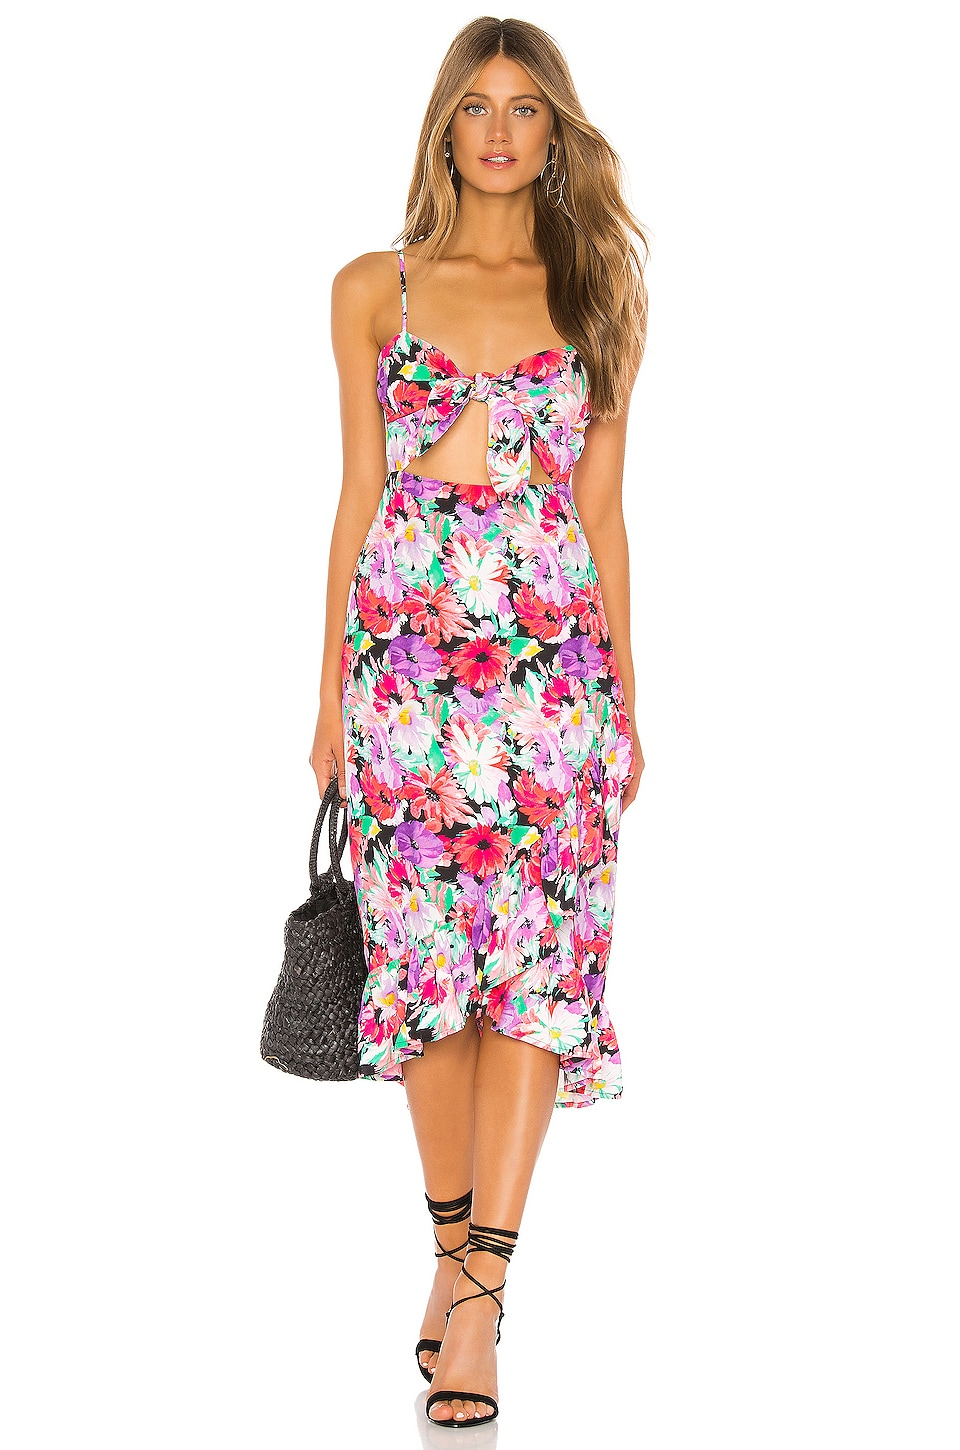 Privacy Please Clinton Midi Dress in Barbara Floral